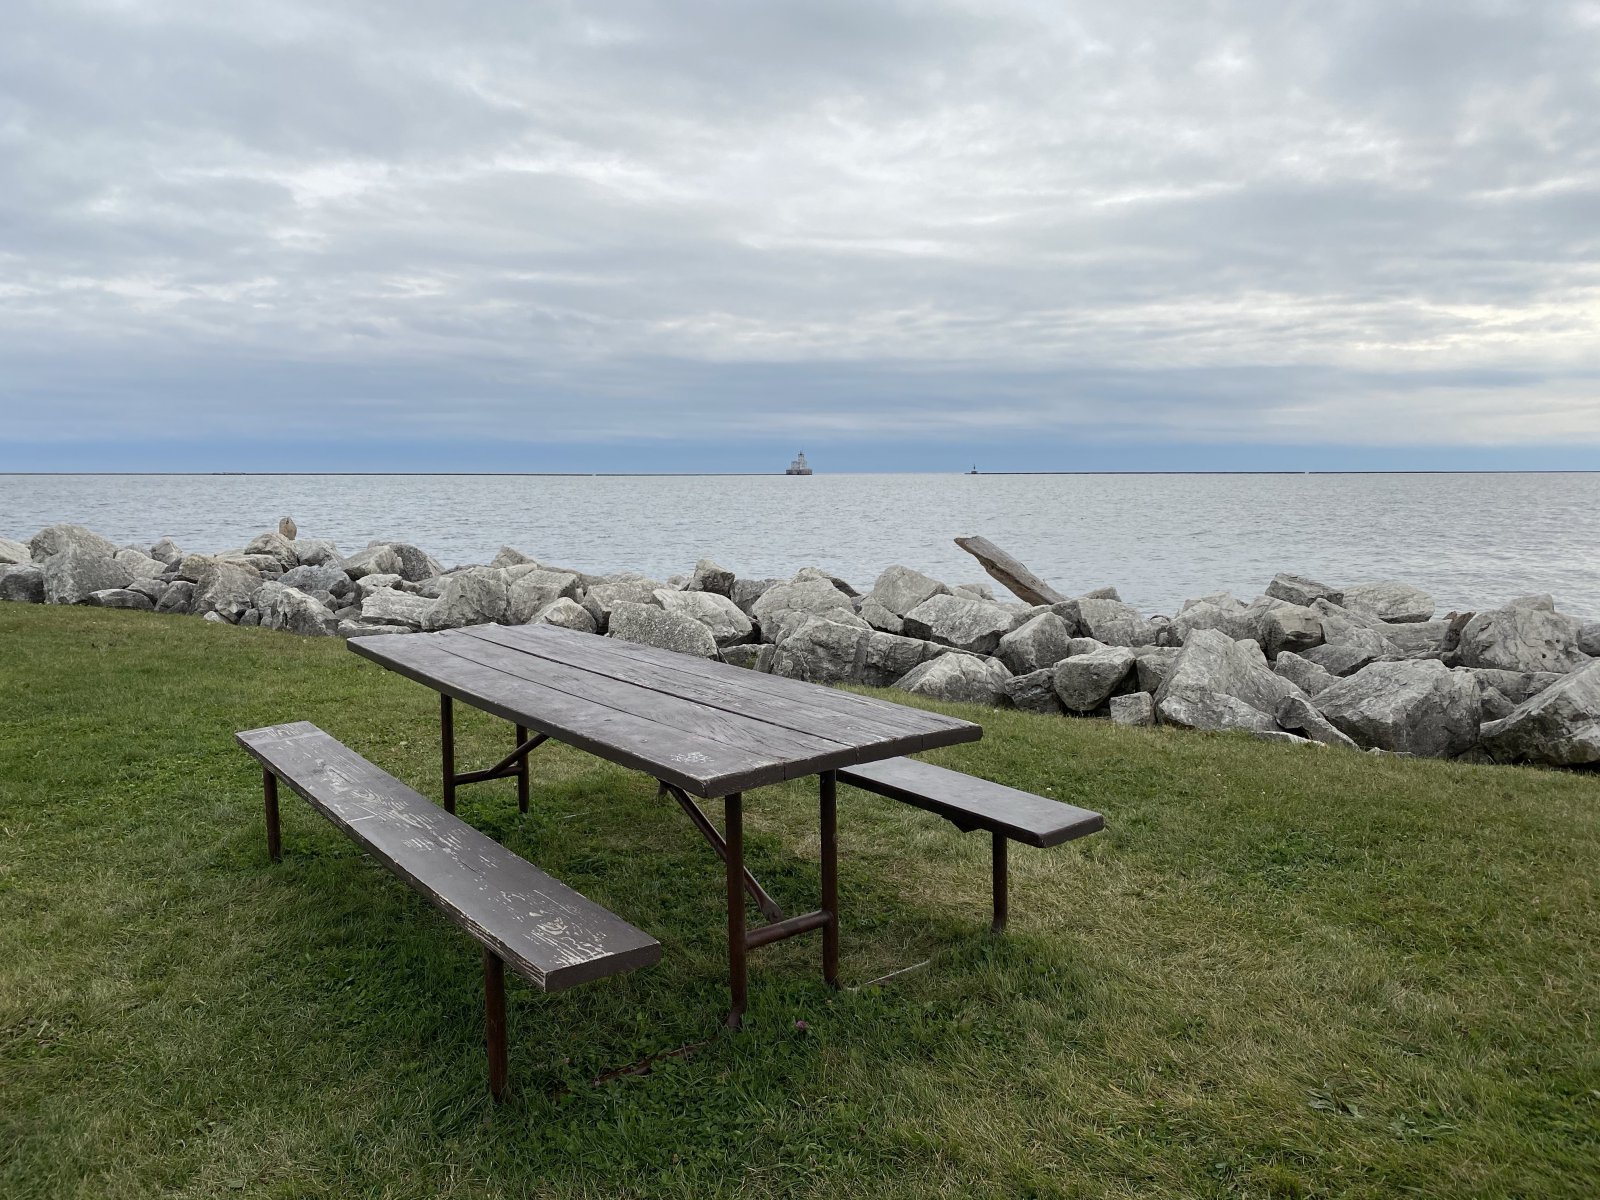 One of several picnic tables